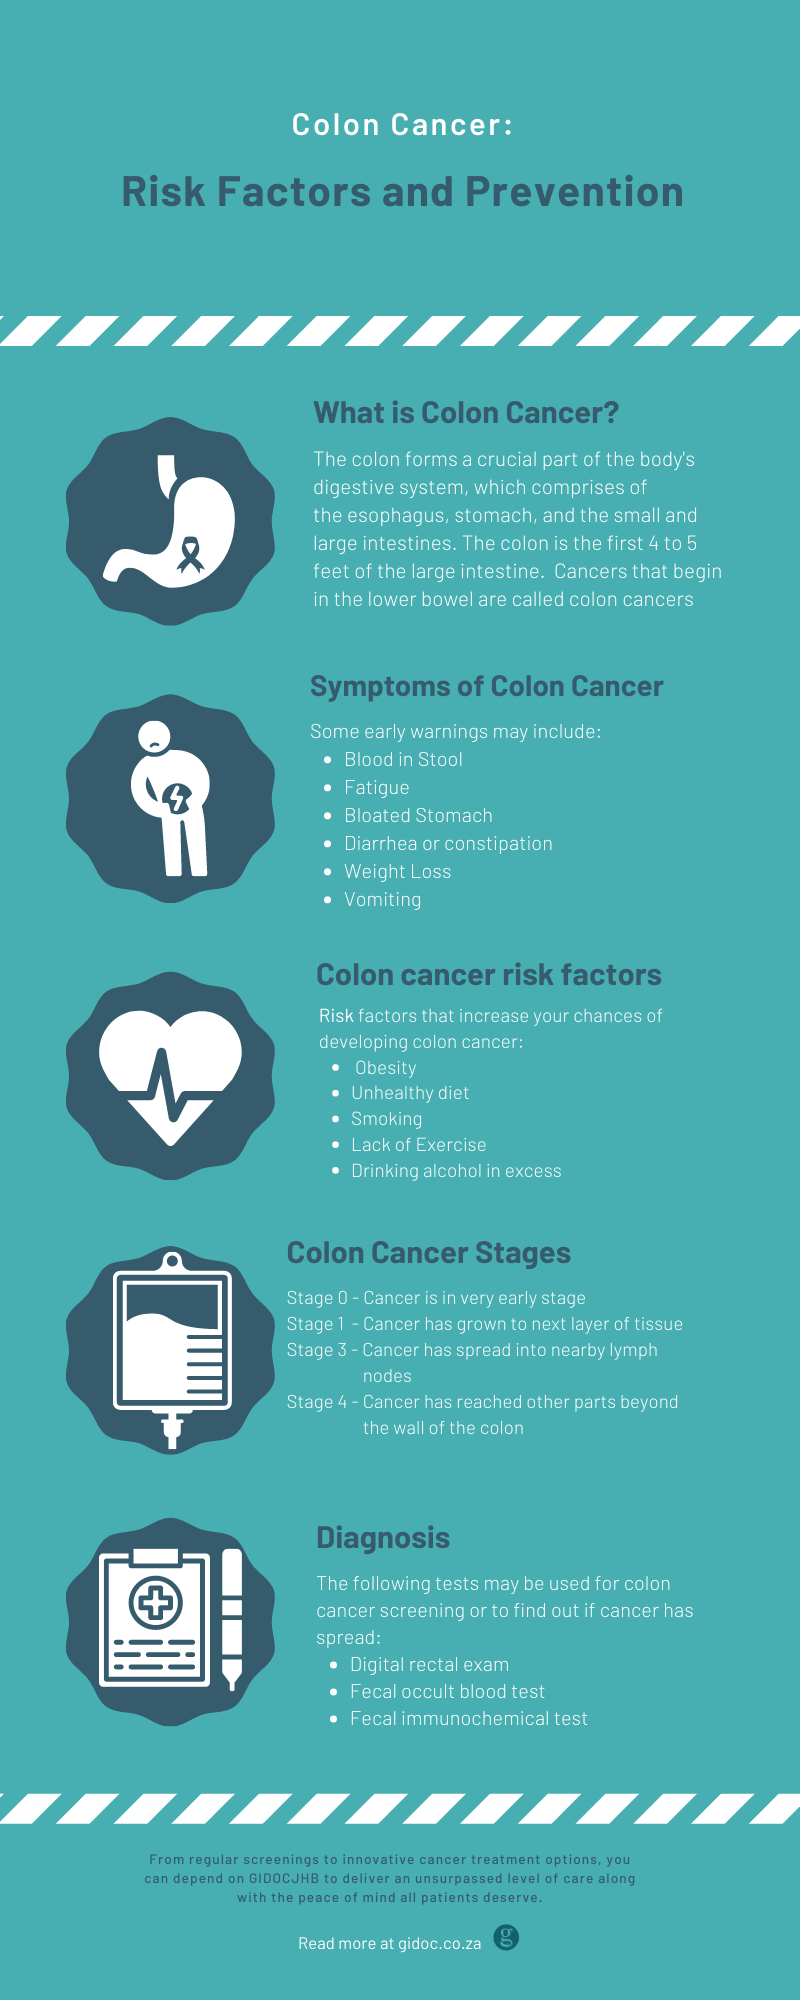 Colon Cancer Risk Factors Prevention infographic - Colon Cancer: Risk Factors and Prevention